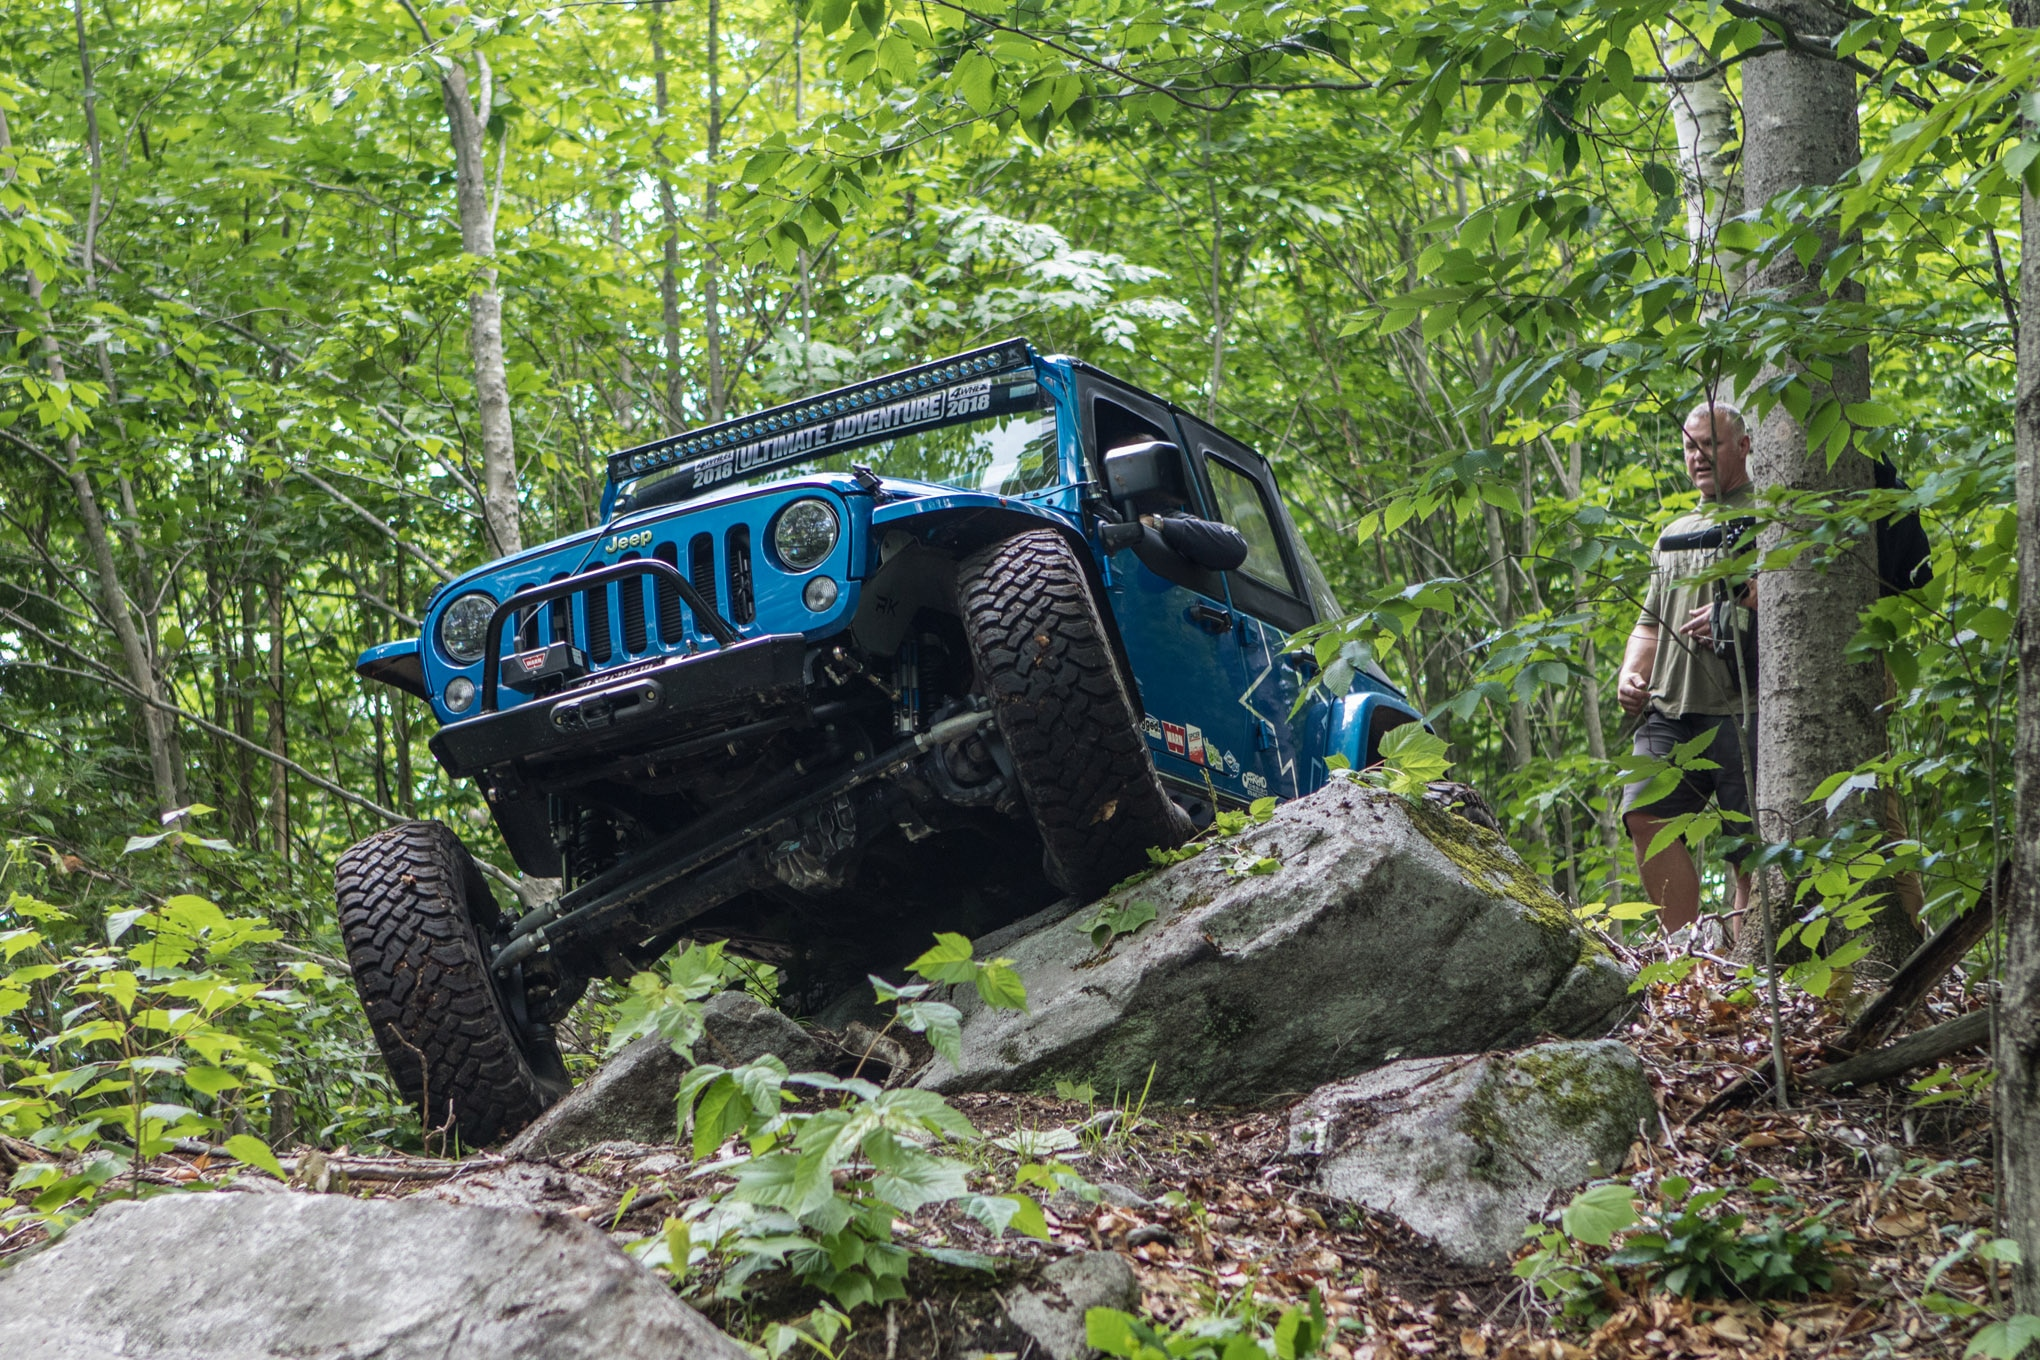 The trails in Bethel were representative of what we found all over New England: large rocks mixed with slick mud and surrounded by dense forests. Falken Tire rep Gerald Lee was driving a loaner Jeep that he'd picked up on the East Coast, but with a factory 3.6L Pentastar engine and Ultimate Dana 60 crate axles he couldn't really hurt it. Maybe that's part of the reason he had a huge smile on his face all week.